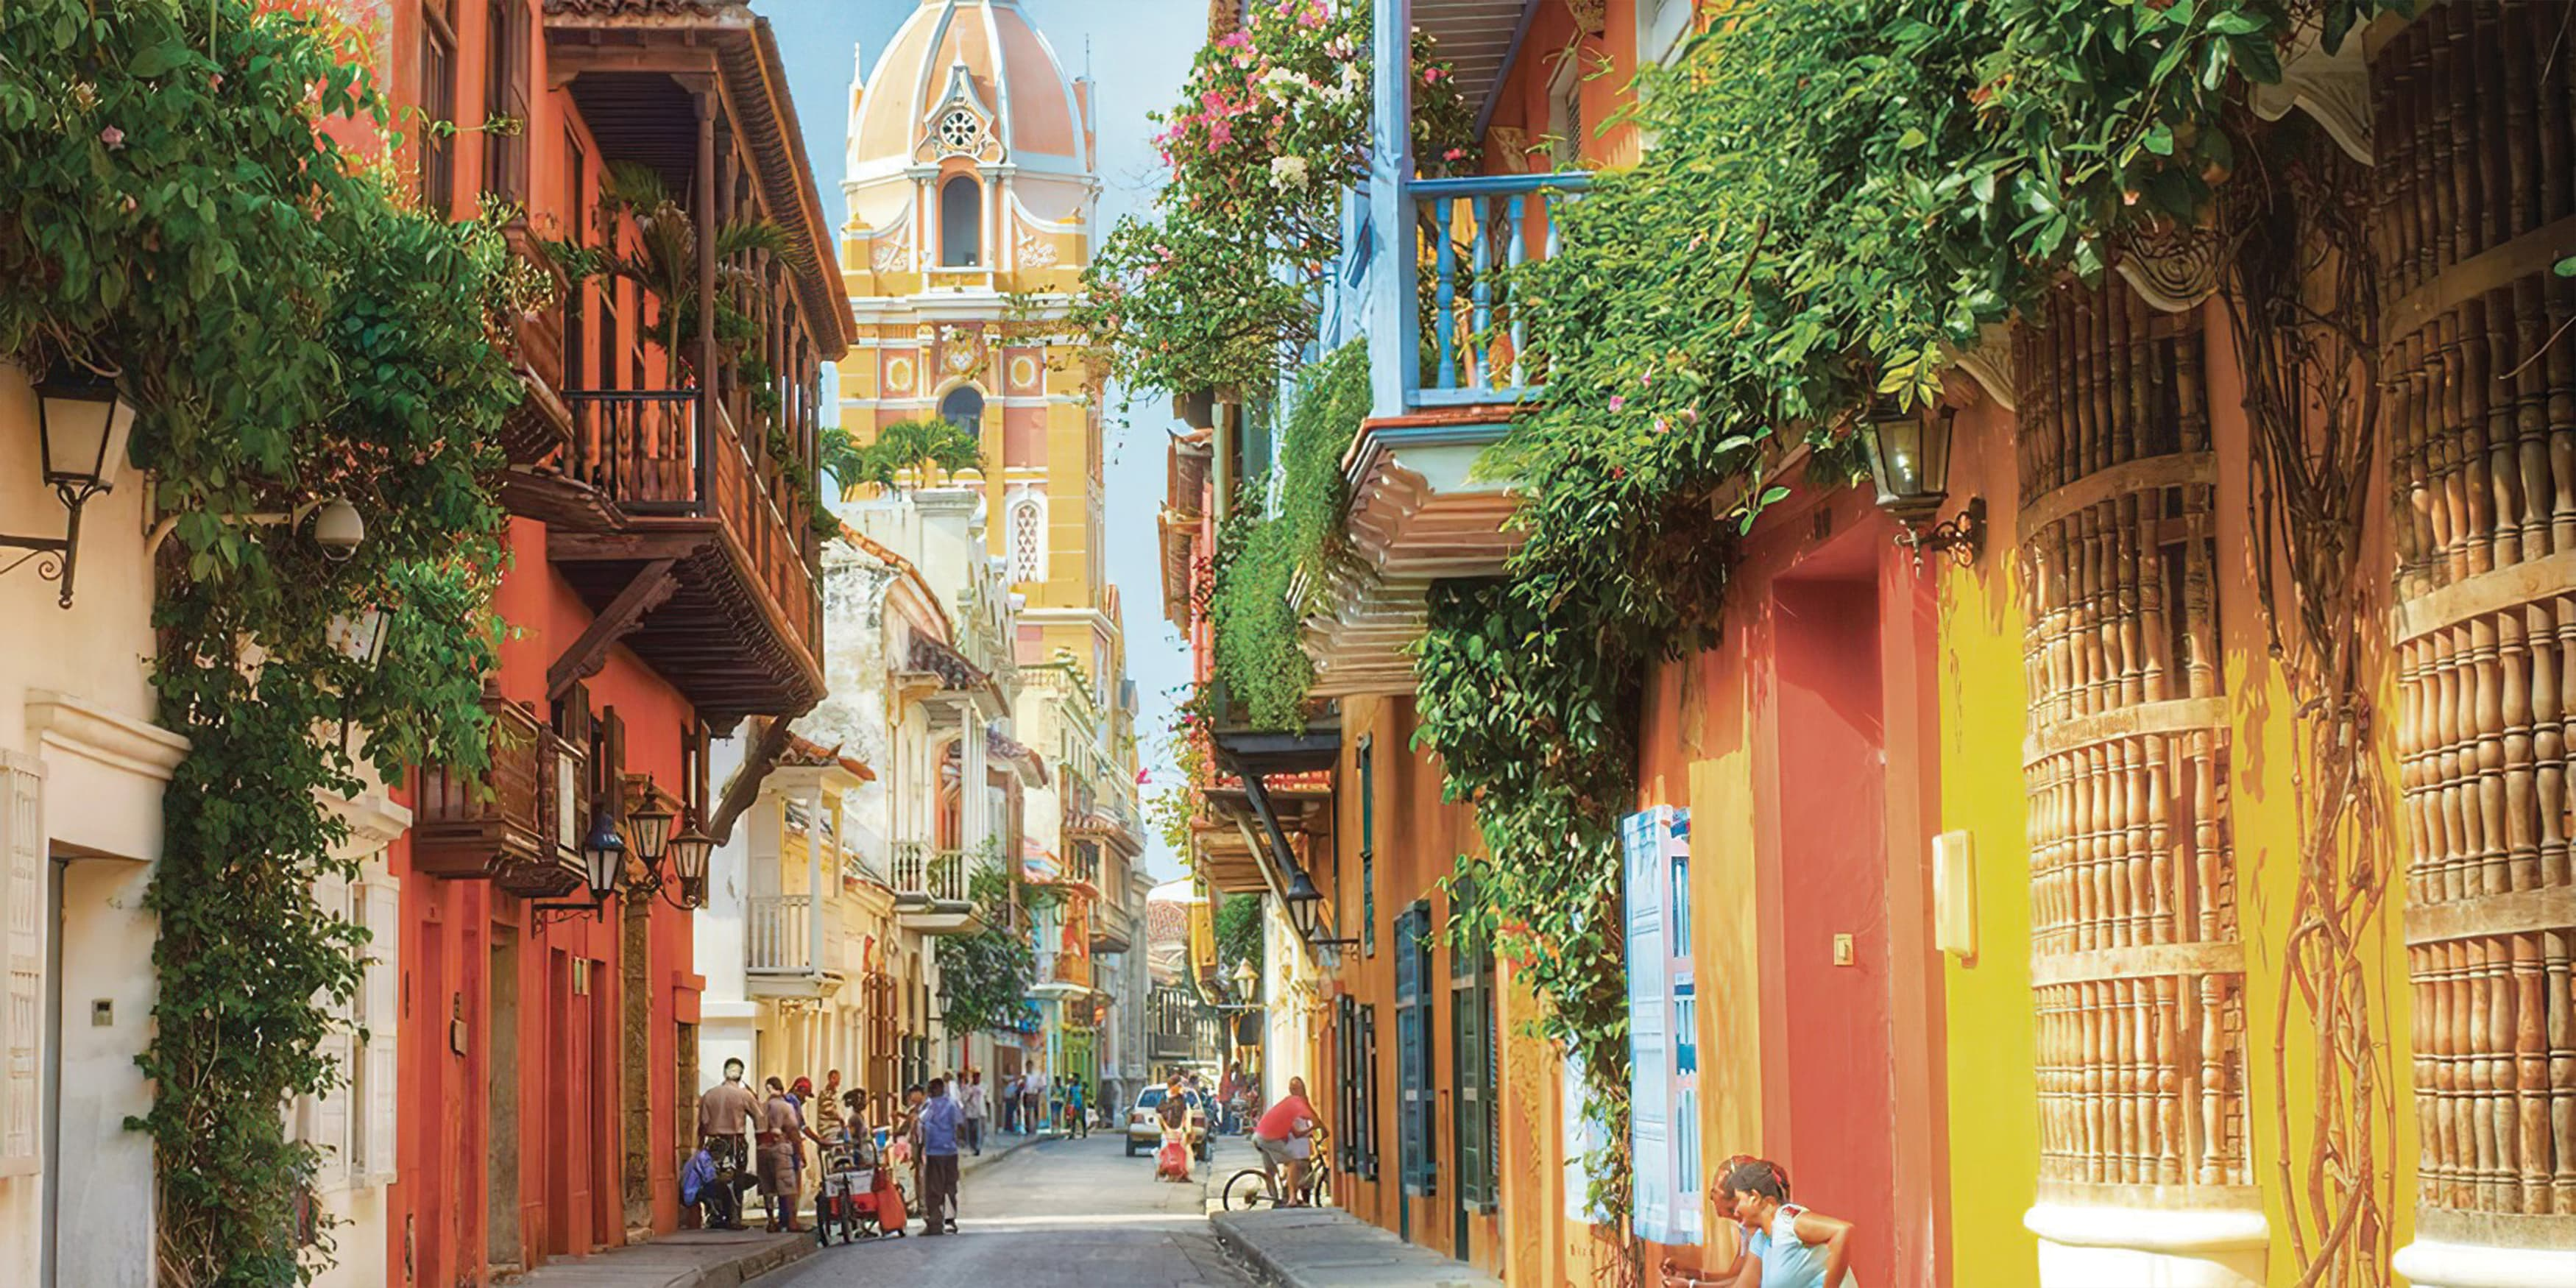 An image of a beautiful streetscape featuring intricately detailed architecture and vivid colors.